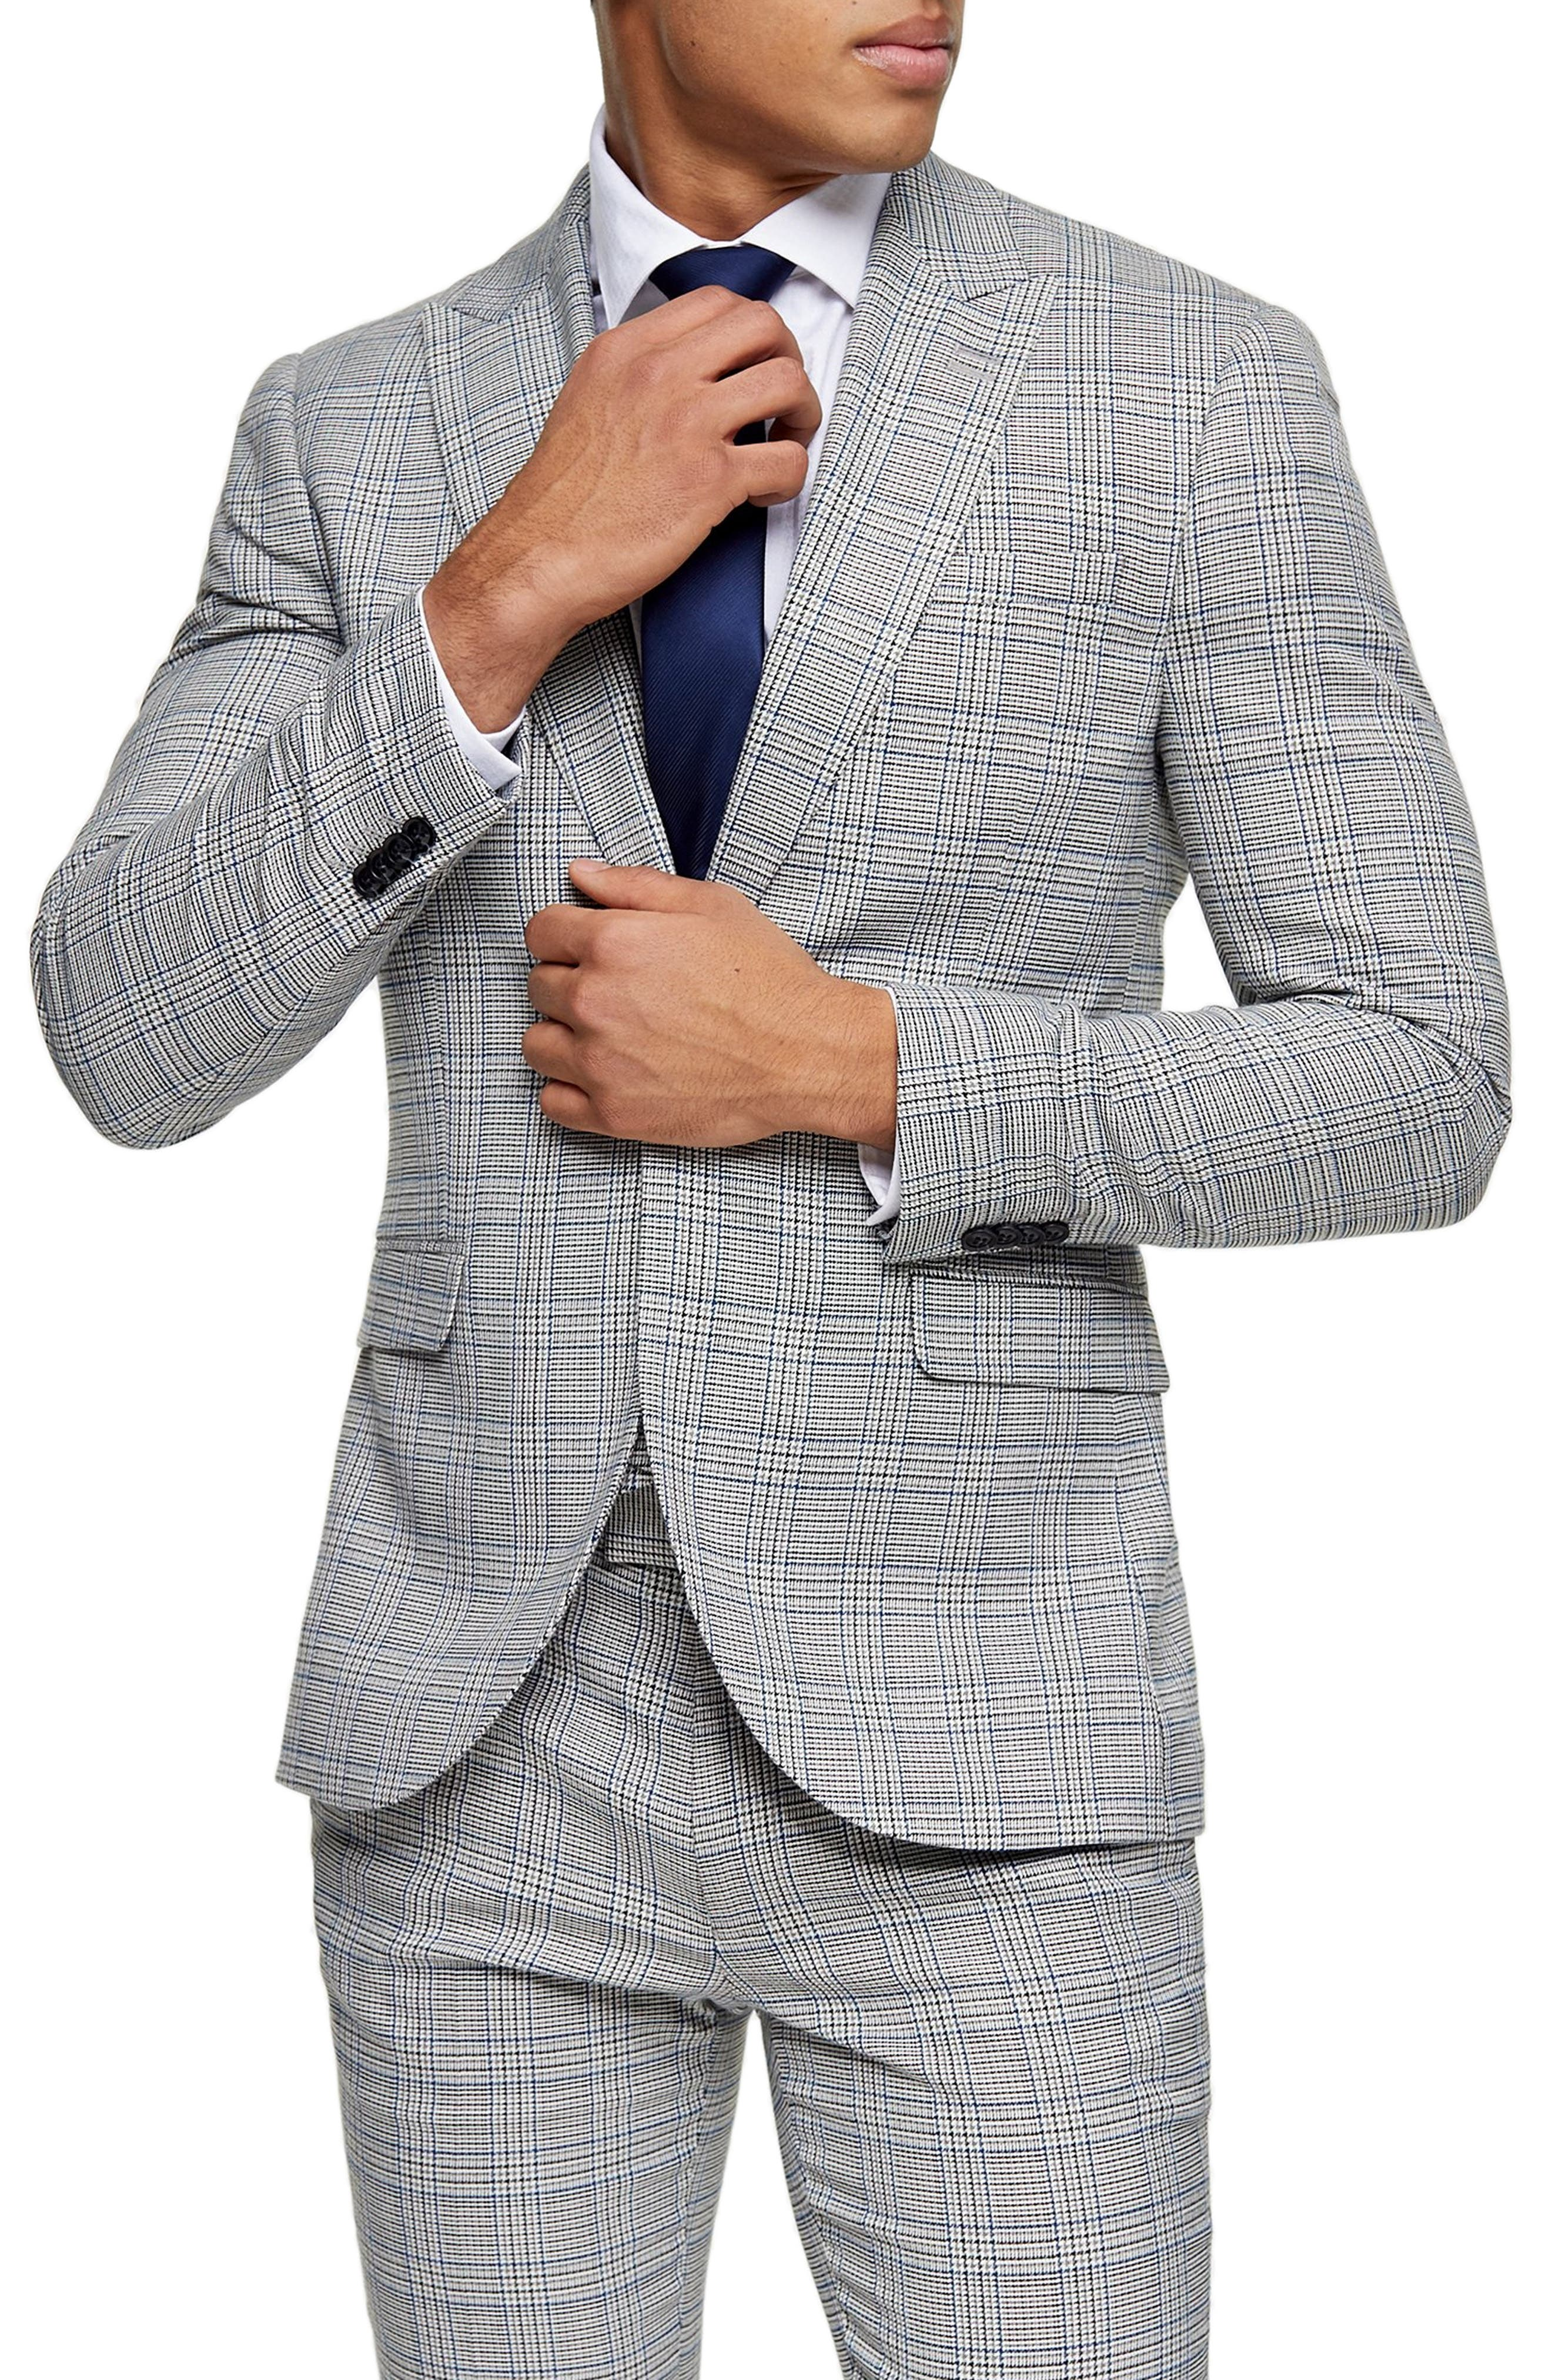 Suit up in this slim-fitting blazer covered in lively checks. Style Name: Topman Luther Skinny Fit Suit Blazer. Style Number: 6042230. Available in stores.